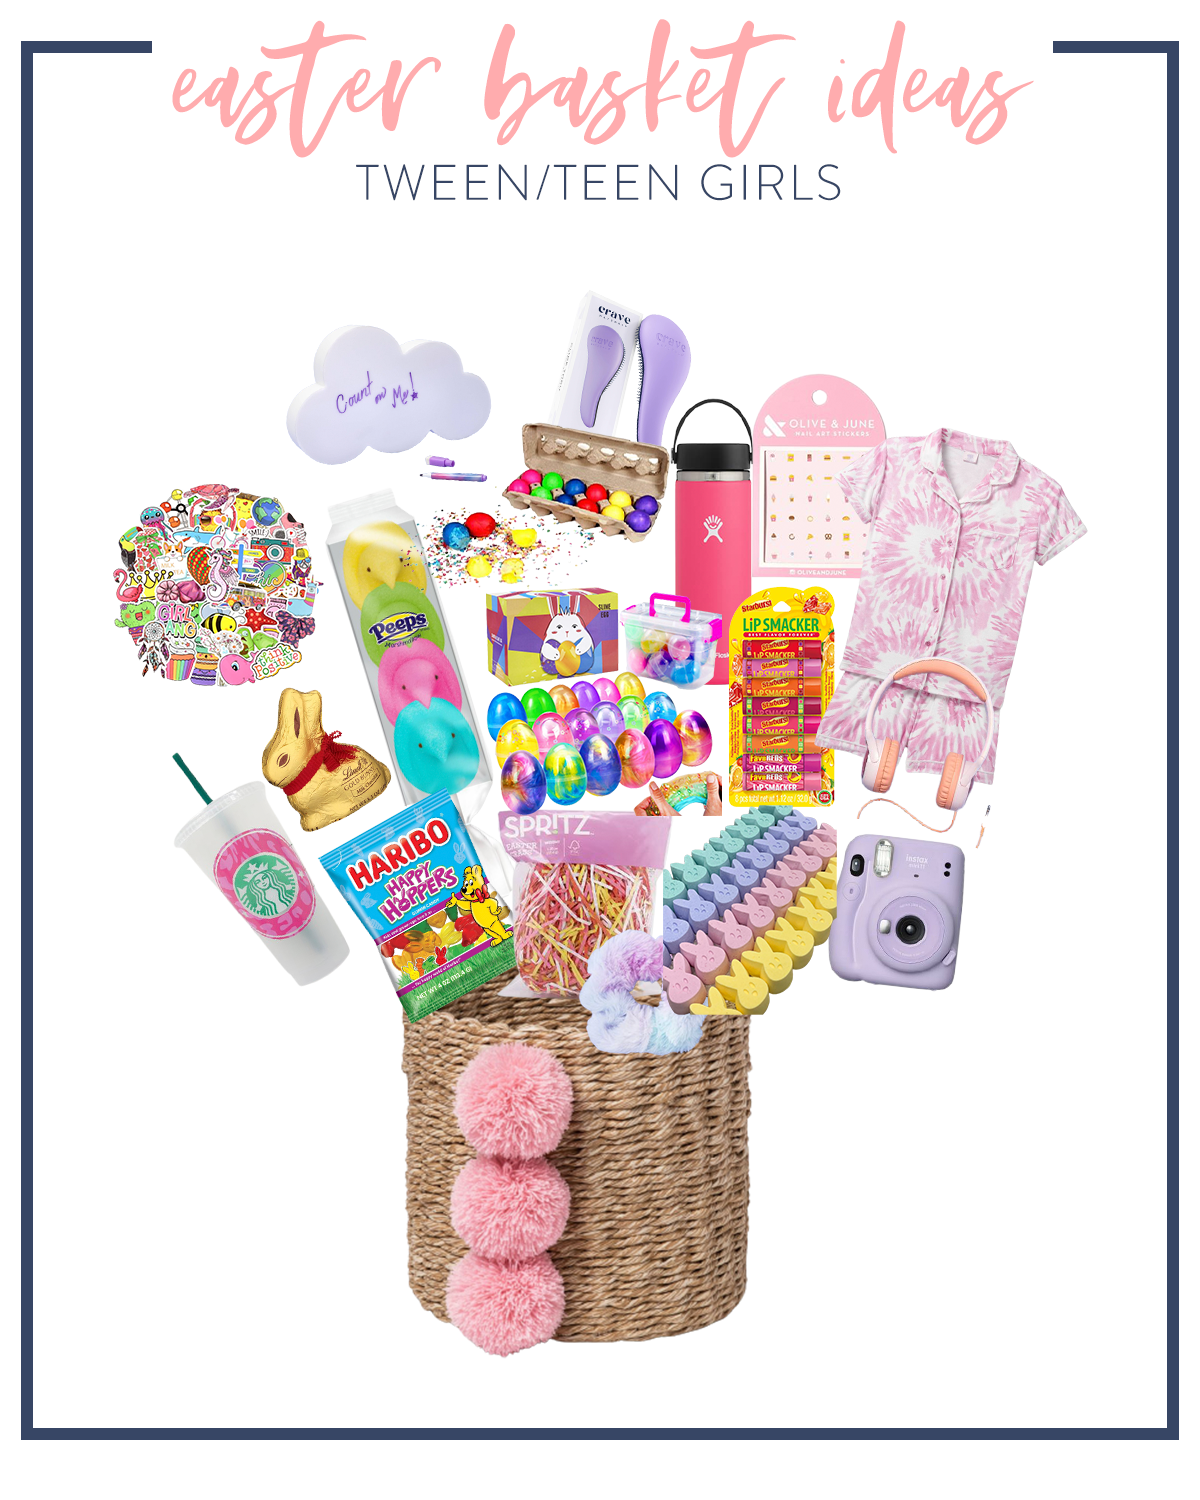 Kids Easter Basket Ideas by popular Houston lifestyle blog, Fancy Ashley: collage image of a wicker and pink pom basket, peeps, Instax camera, chocolate bunny, pink tie dye pajamas, pink hydro flax water bottle, lip smackers chapstick, pink and yellow basket grass, Haribo gummy bears, pink and white headphones, Starbucks tumbler, and stickers.